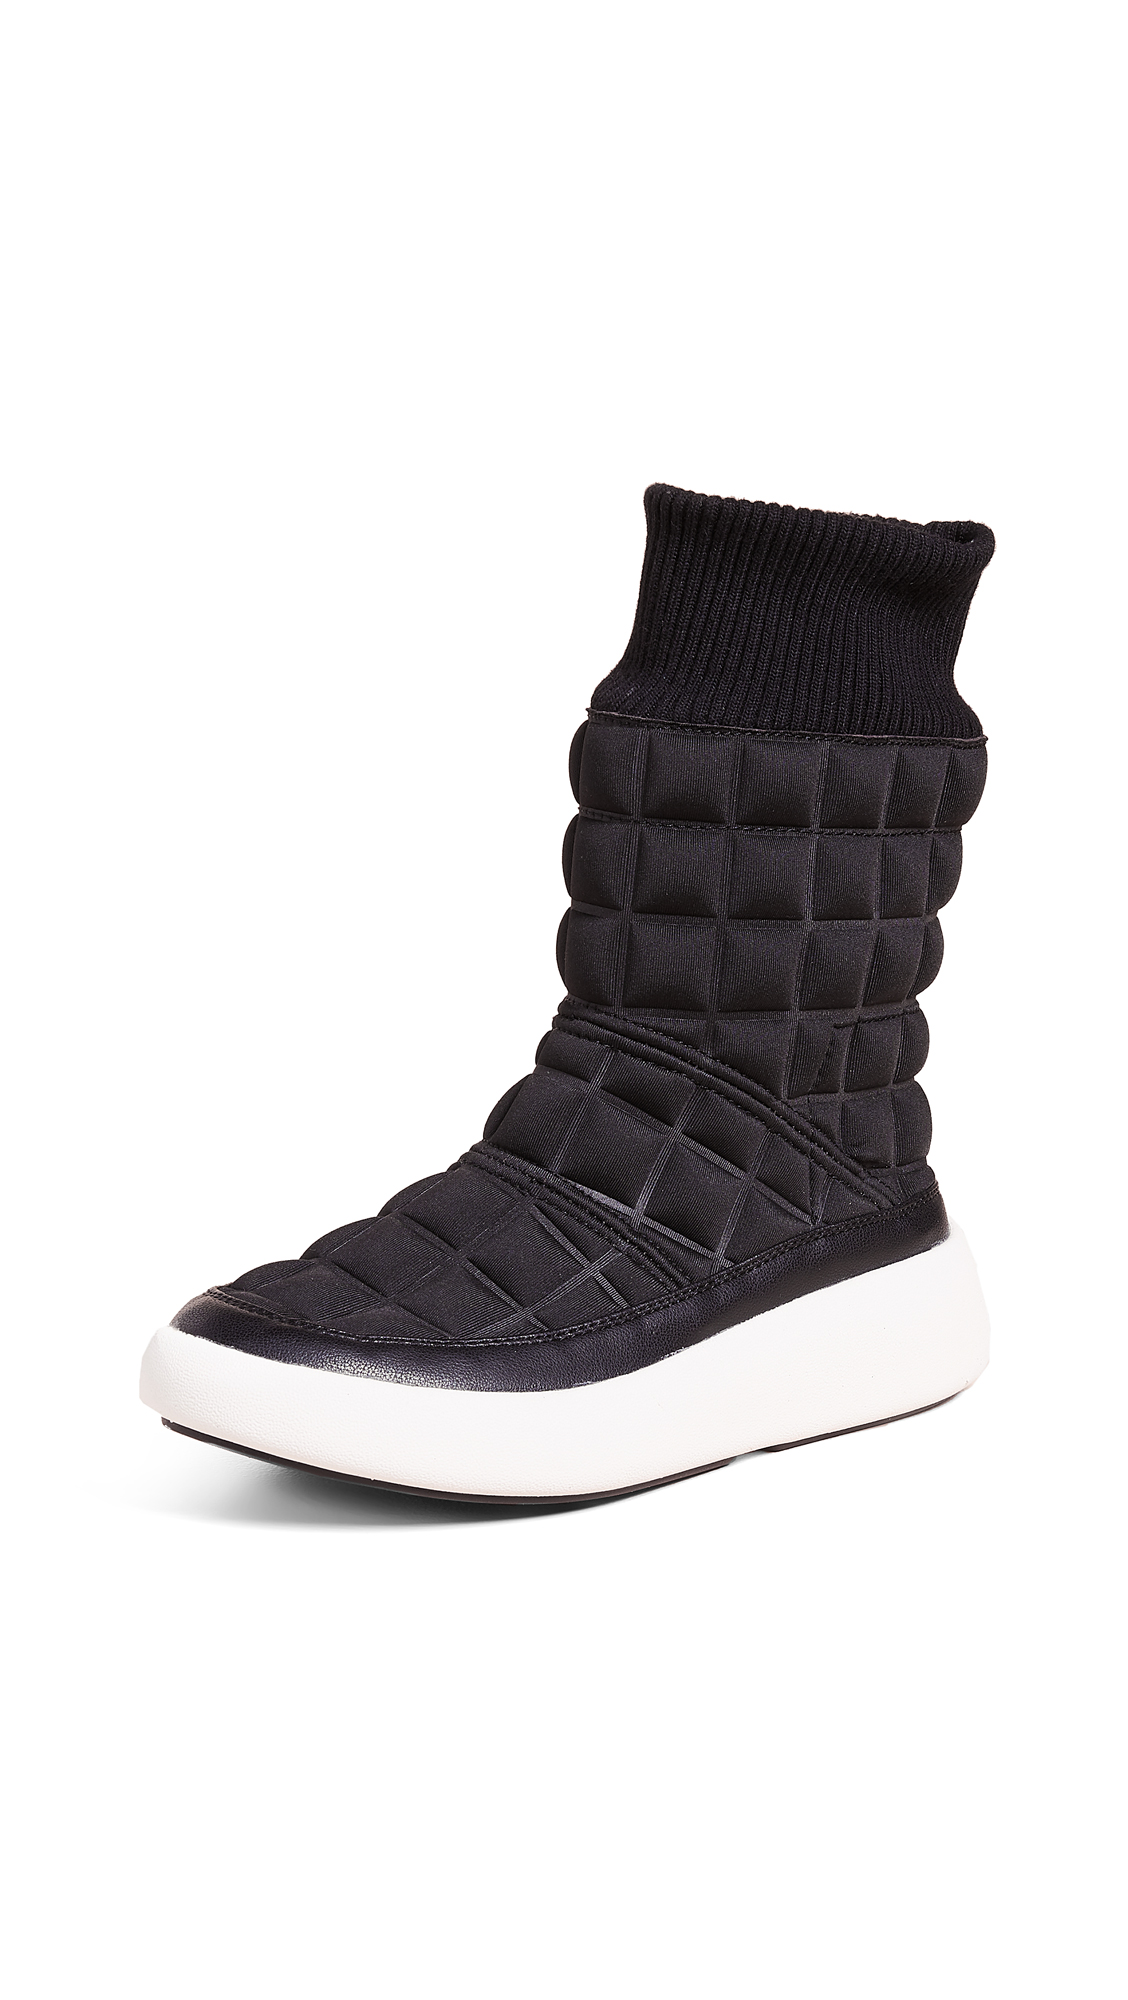 United Nude Bo Bubble Sneaker Boots